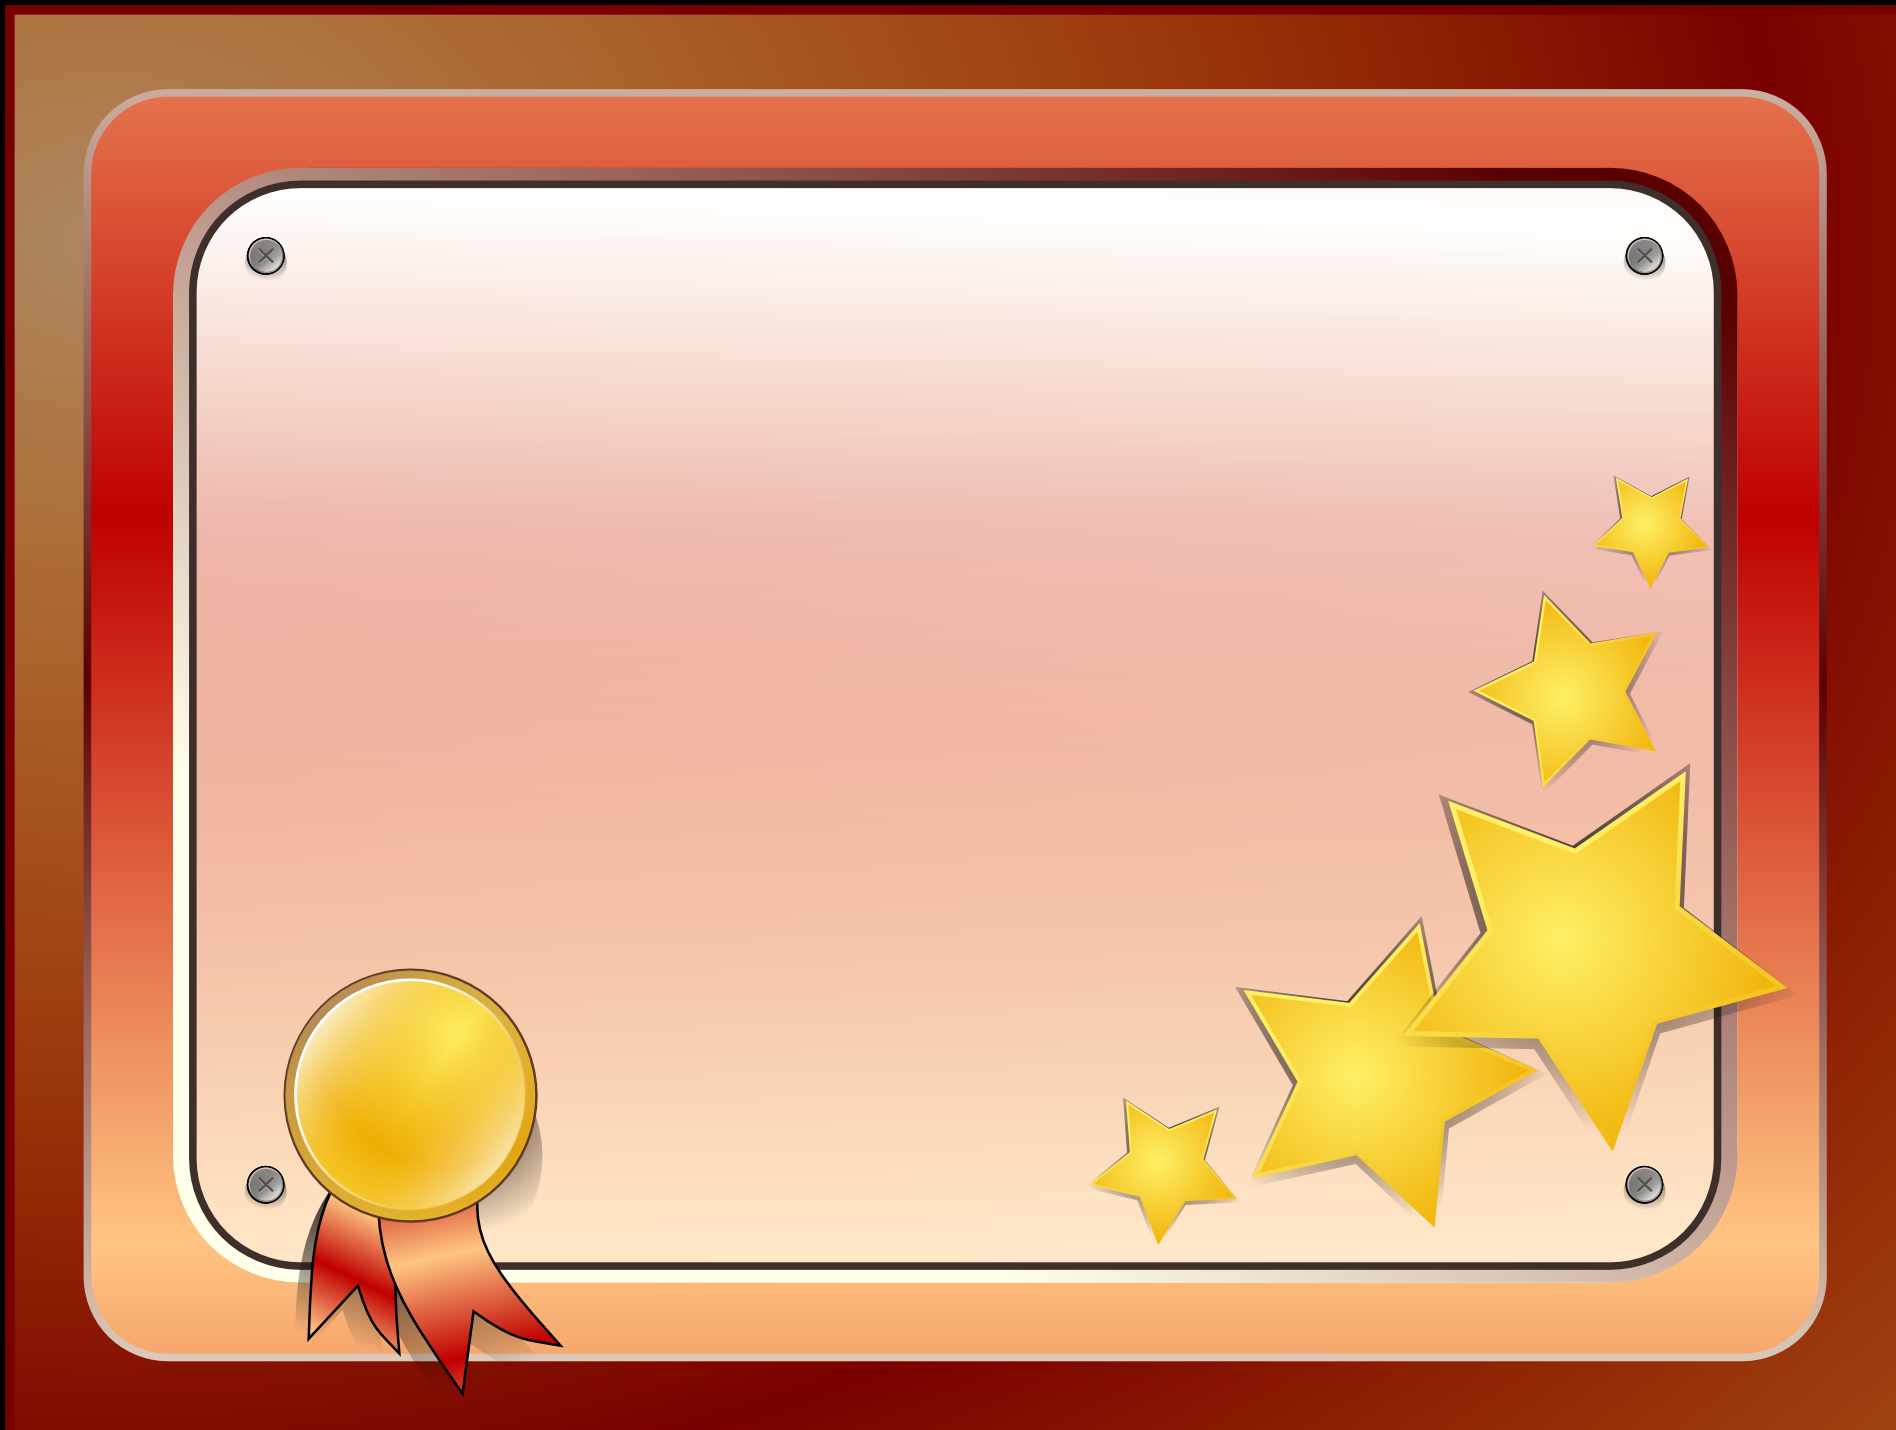 Certificate Template PNG Image